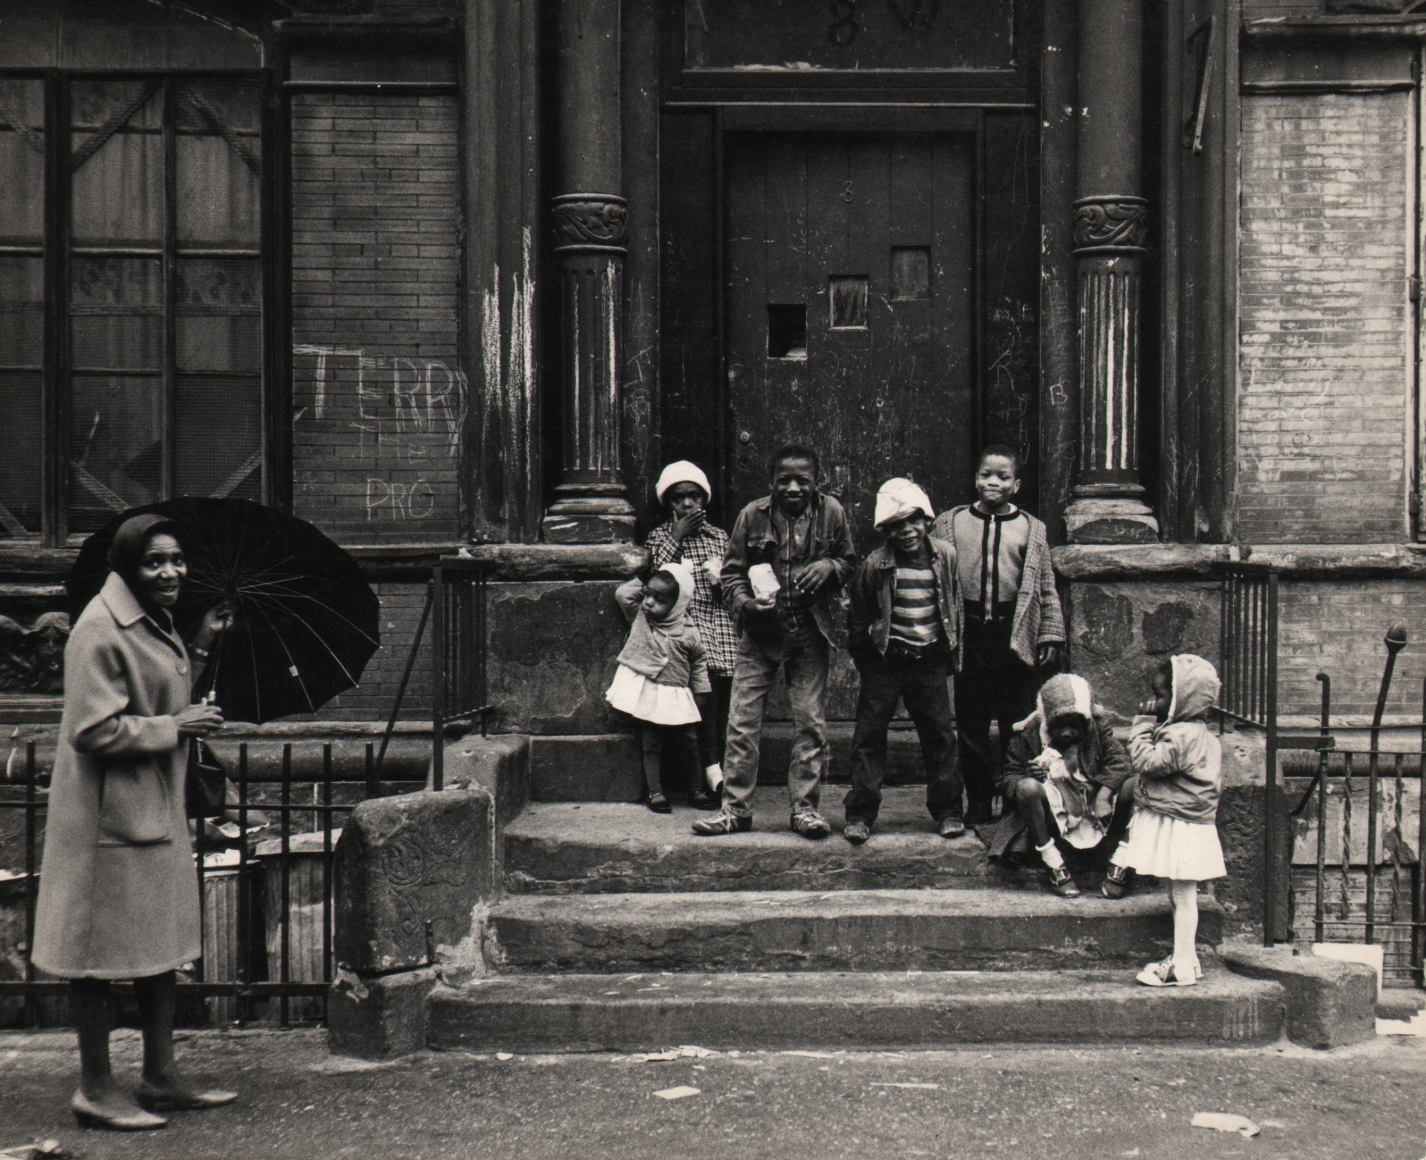 31. Beuford Smith, Harlem Children, Easter Sunday, 1965. Seven children lined up on a stoop; a smiling woman holding an umbrella stands in the lower left of the frame.